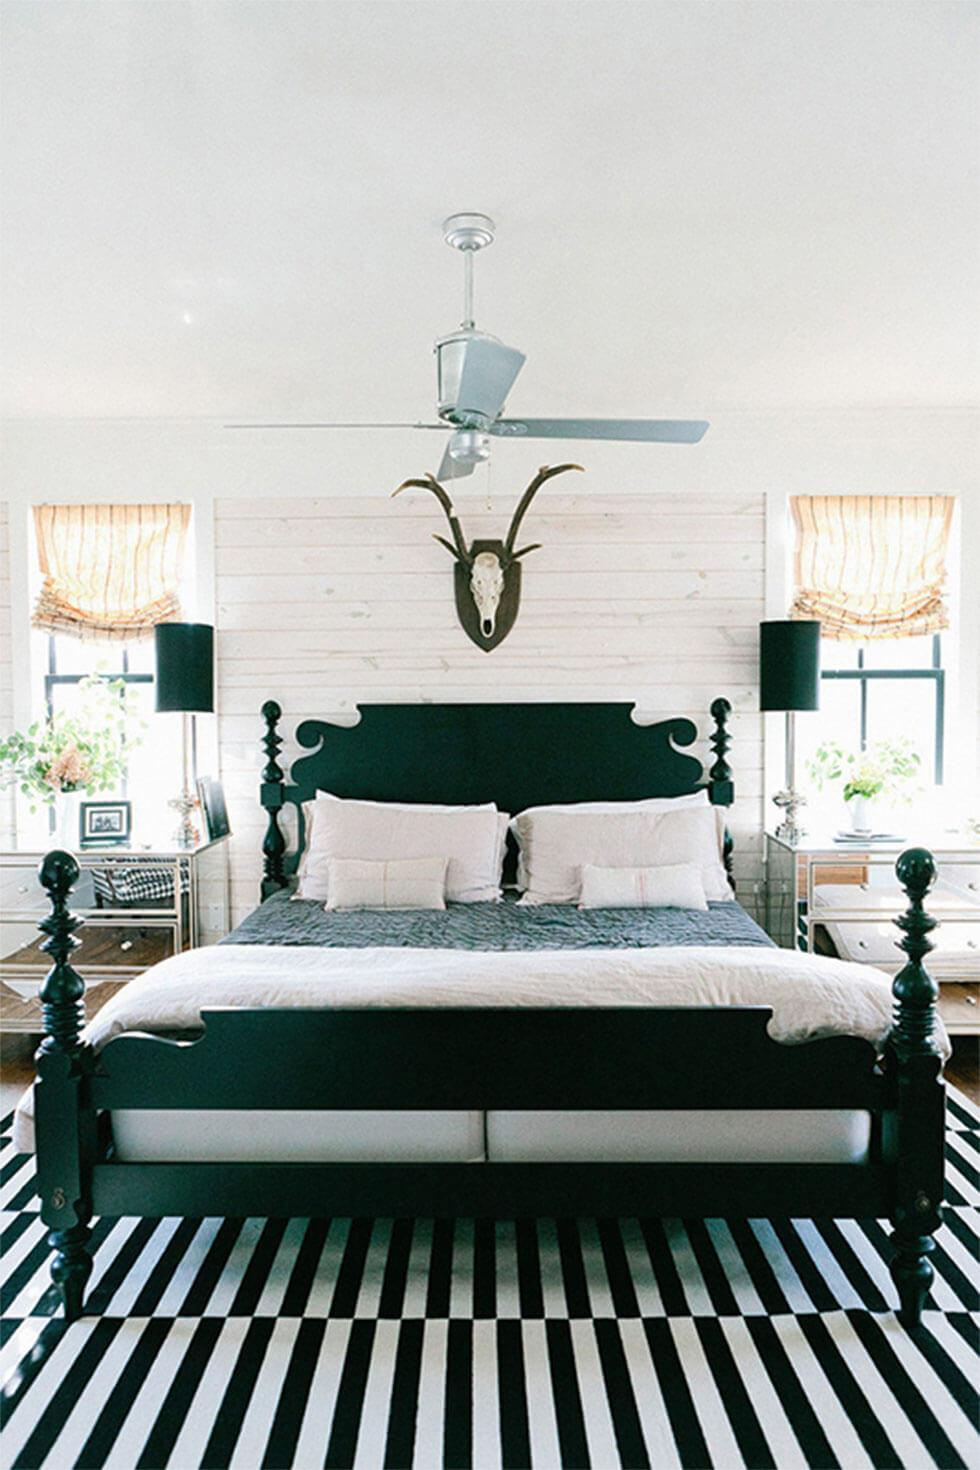 Classic black wooden bed in a white brick room with black lamps and modern, printed rug